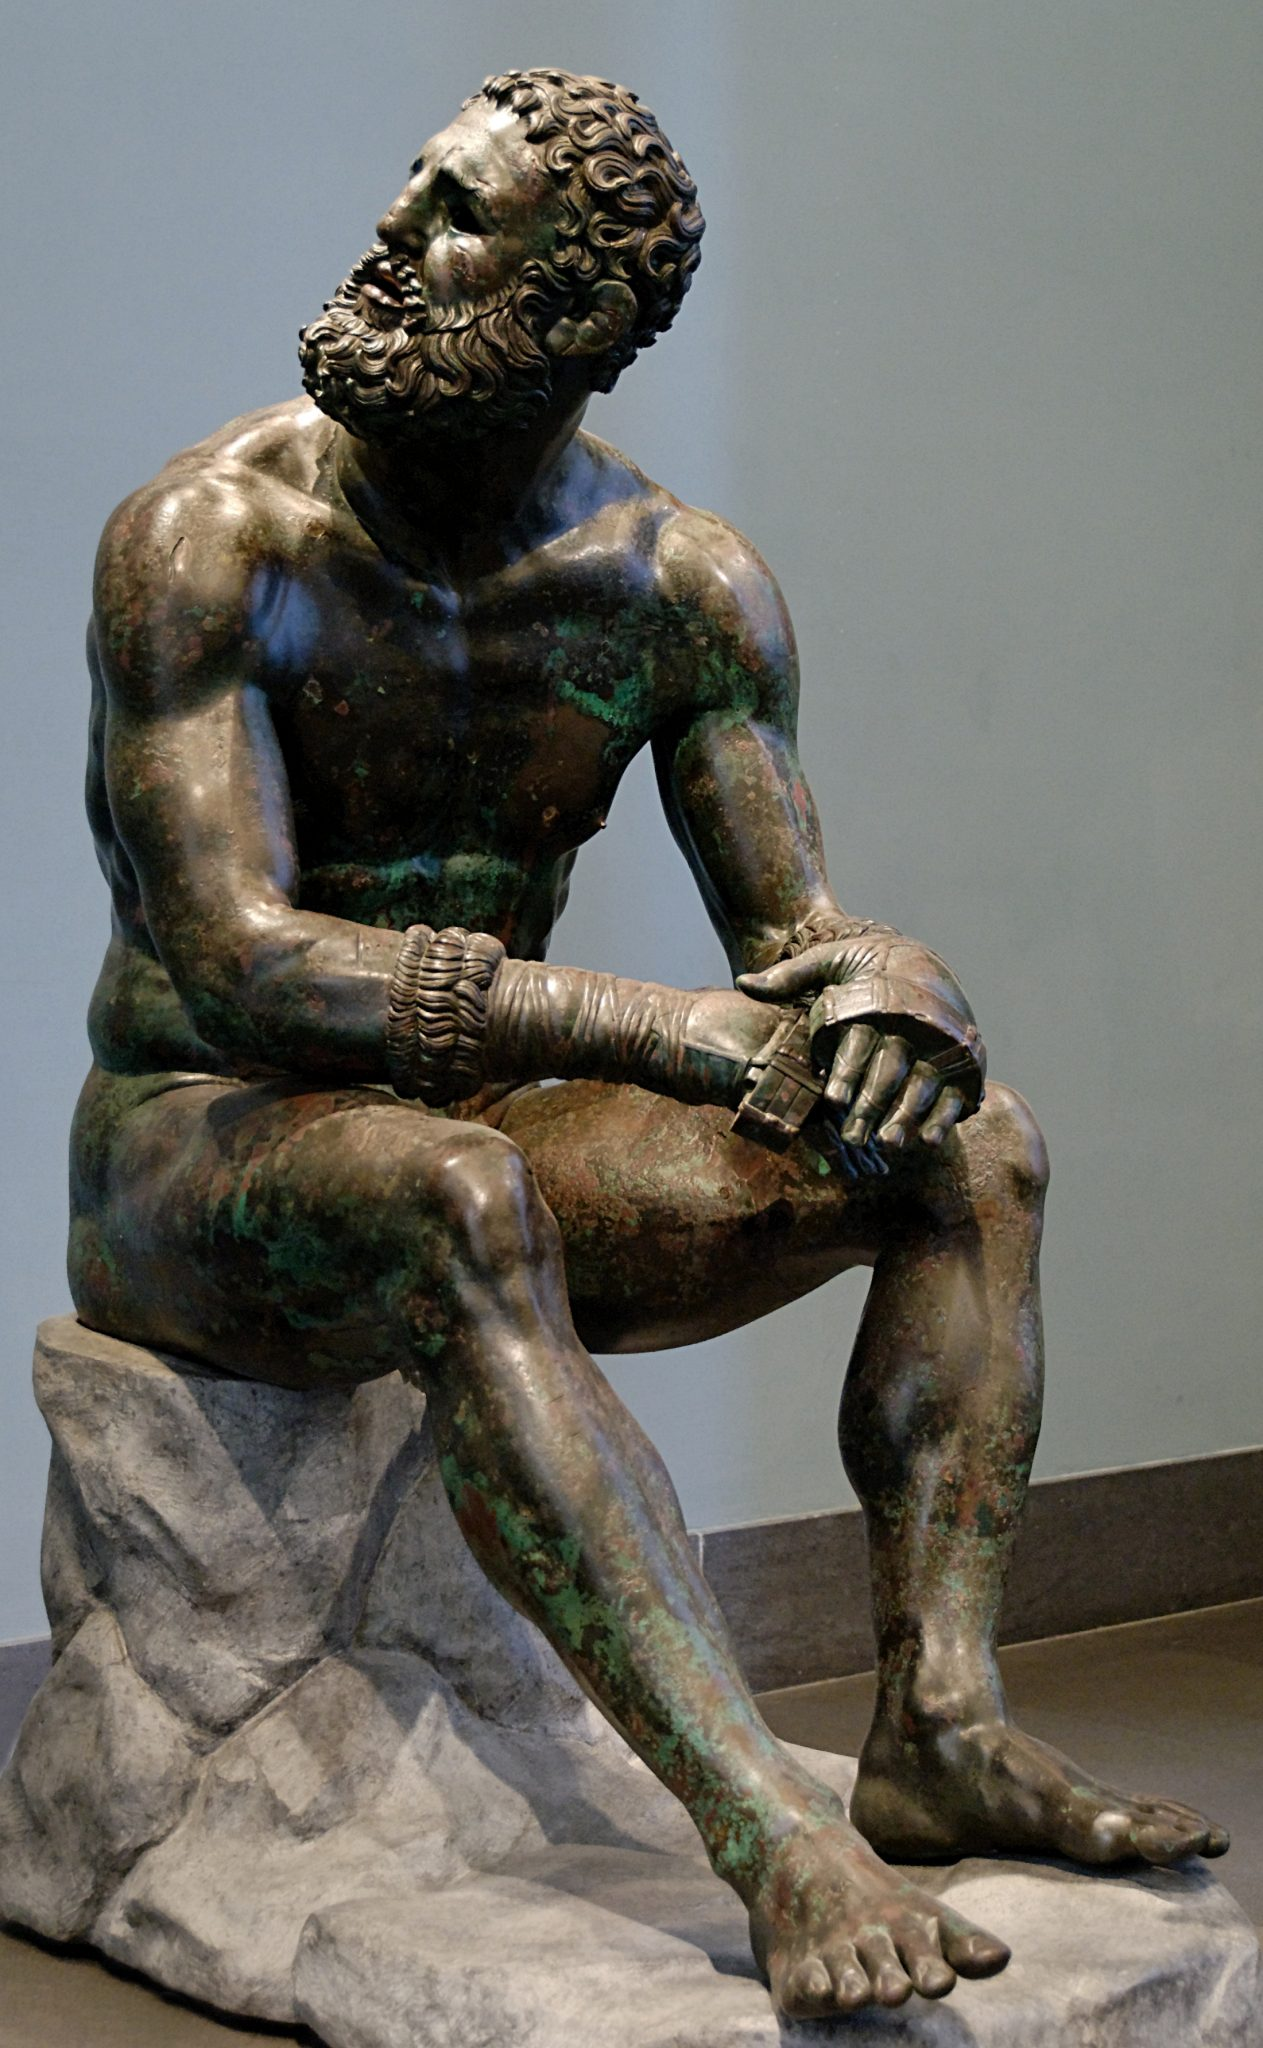 <p><i>The Resting Boxer.</i></p><p>4th c. BCE-1st c. BCE. Bronze.</p><p>Museo Nationale Romano, Rome.</p>